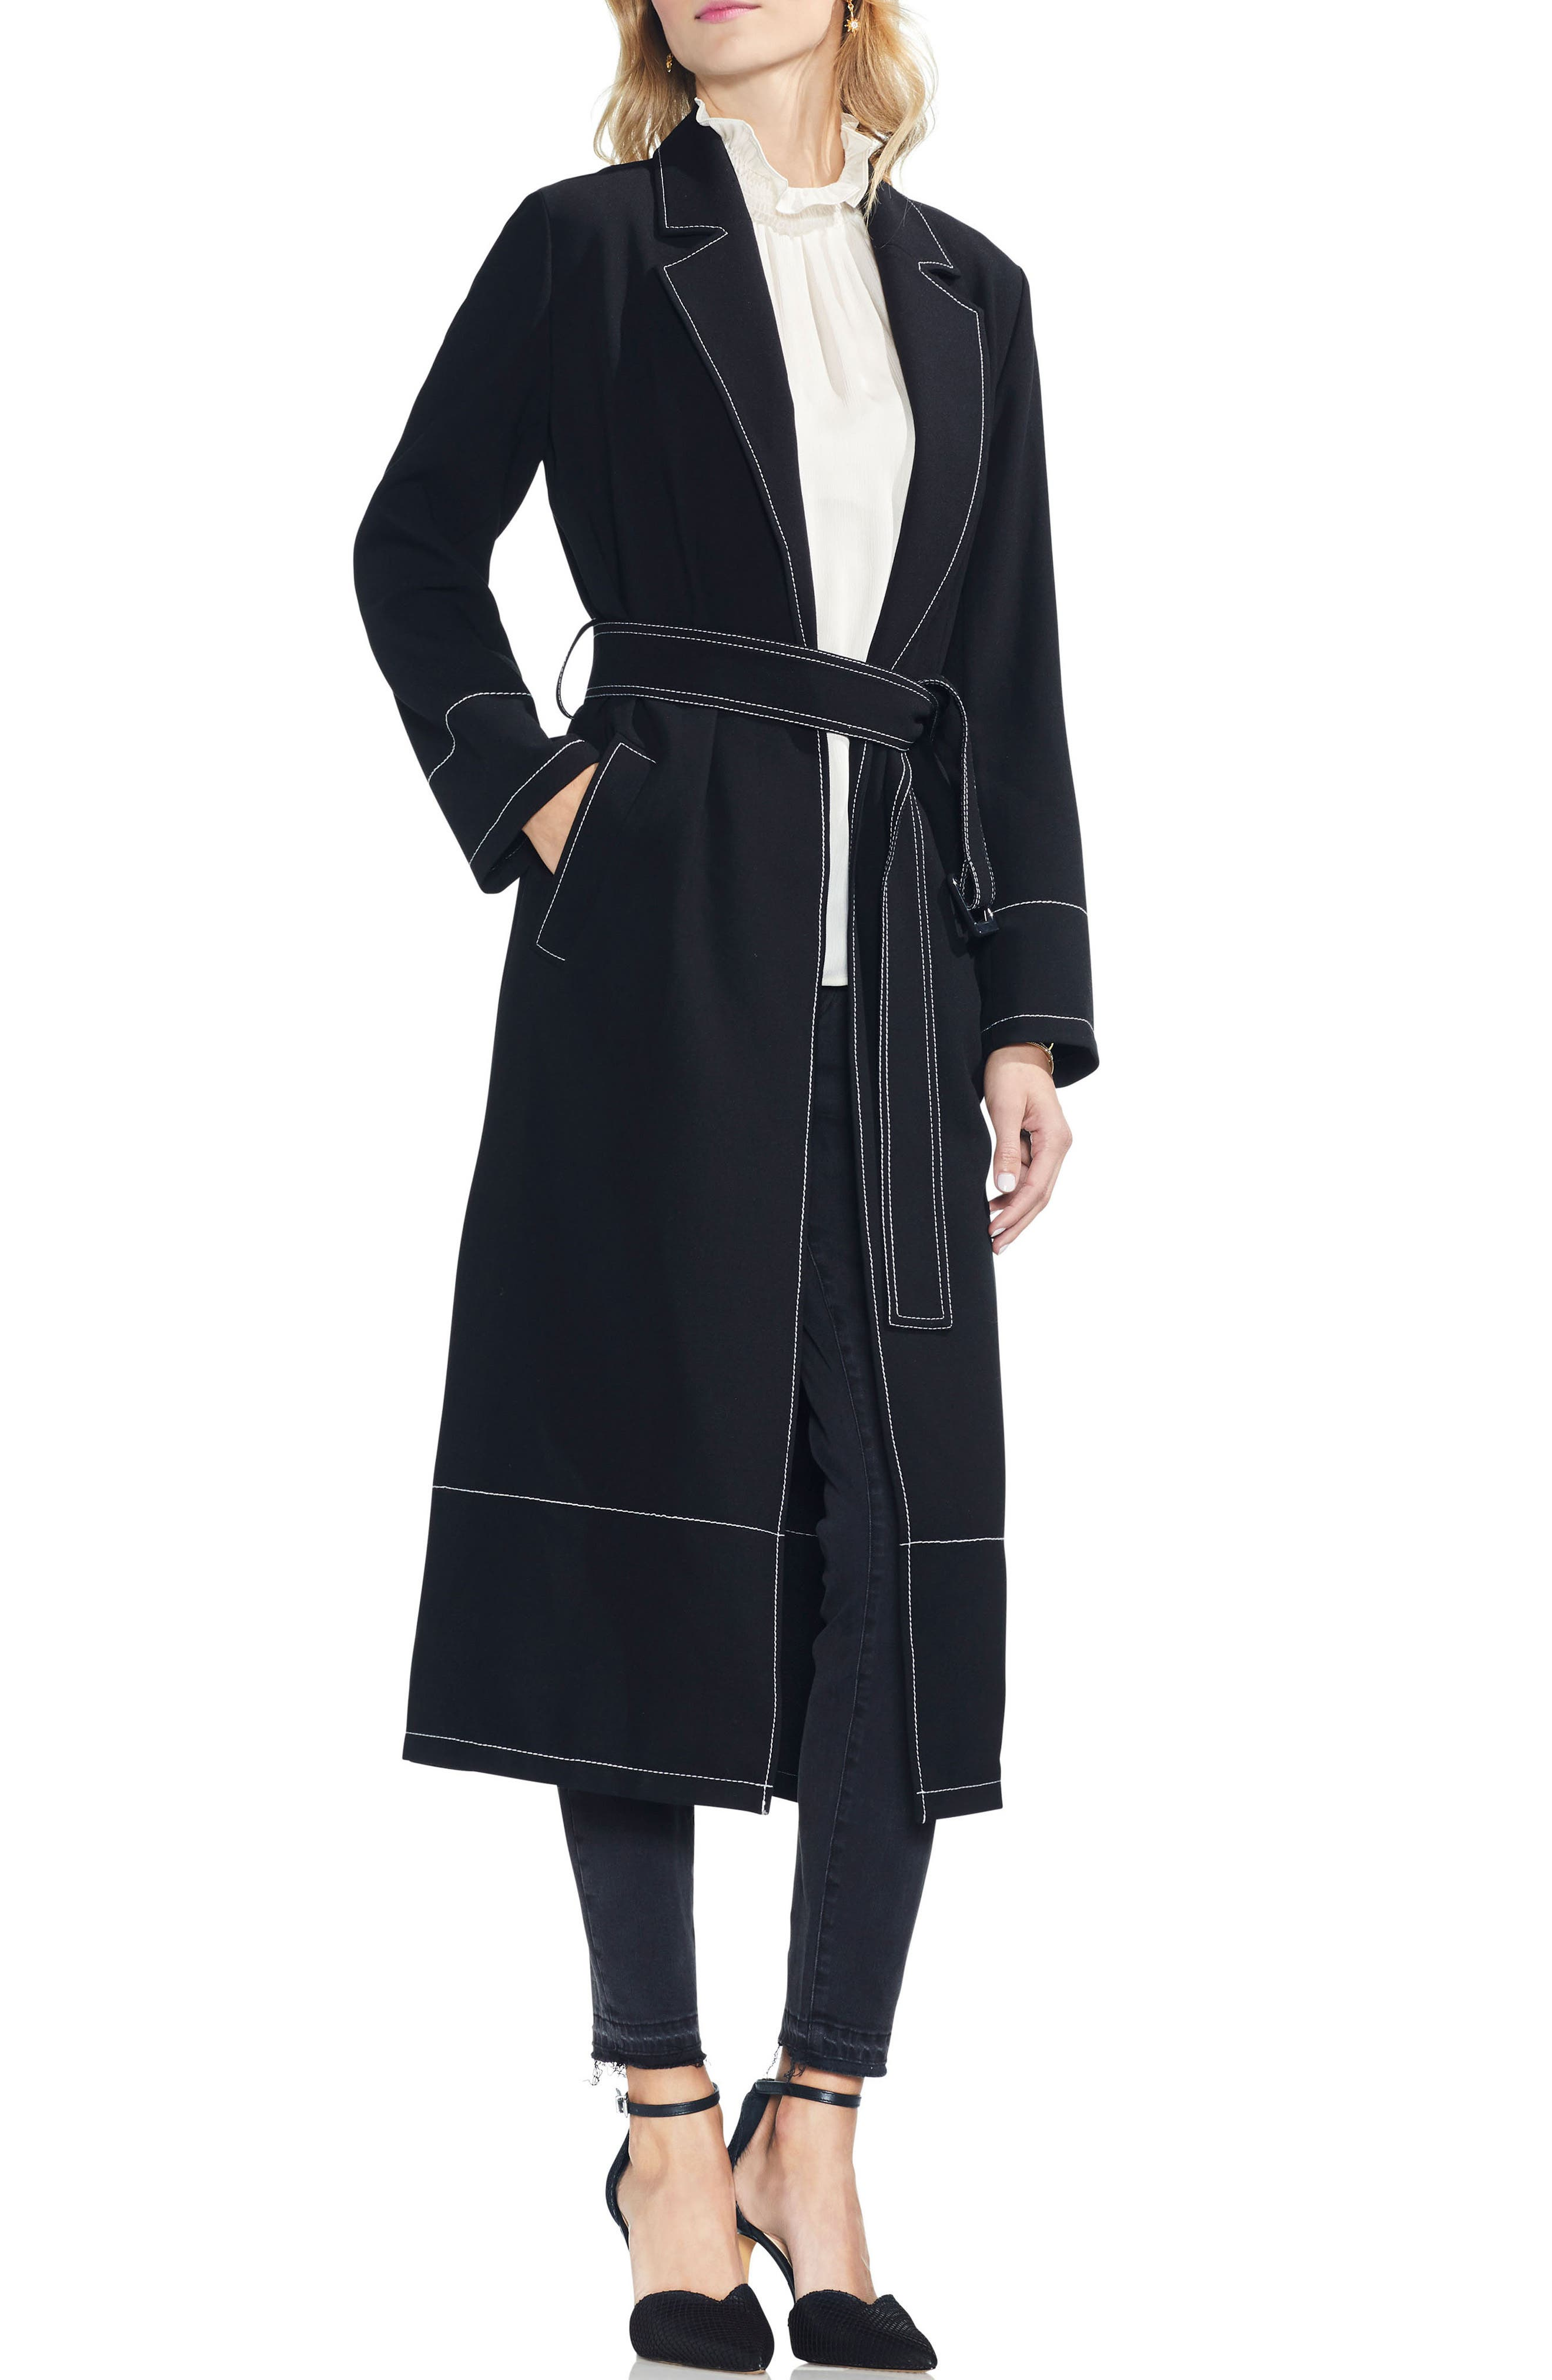 Stetch Crepe Petite Trench Coat $199